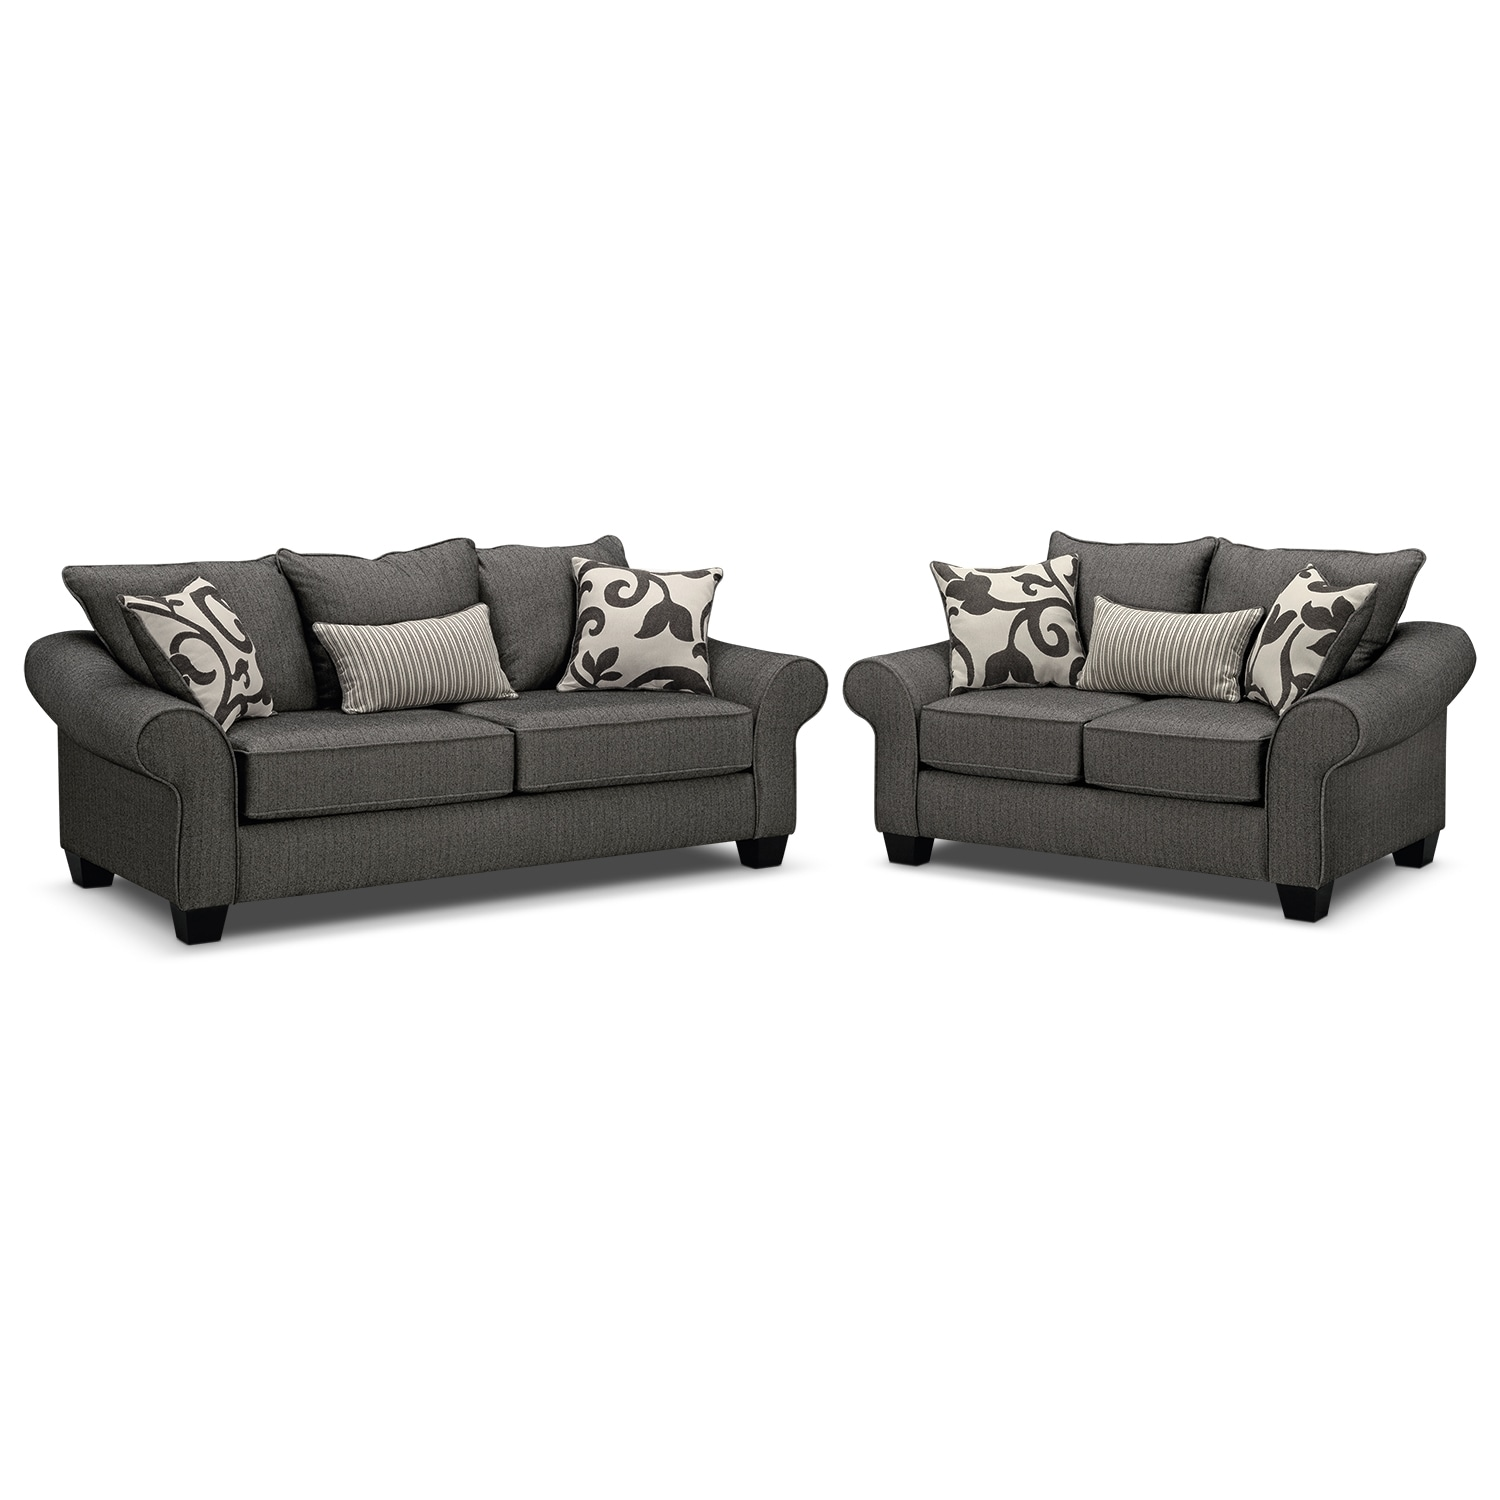 Living Room Furniture - Colette Gray 2 Pc. Living Room